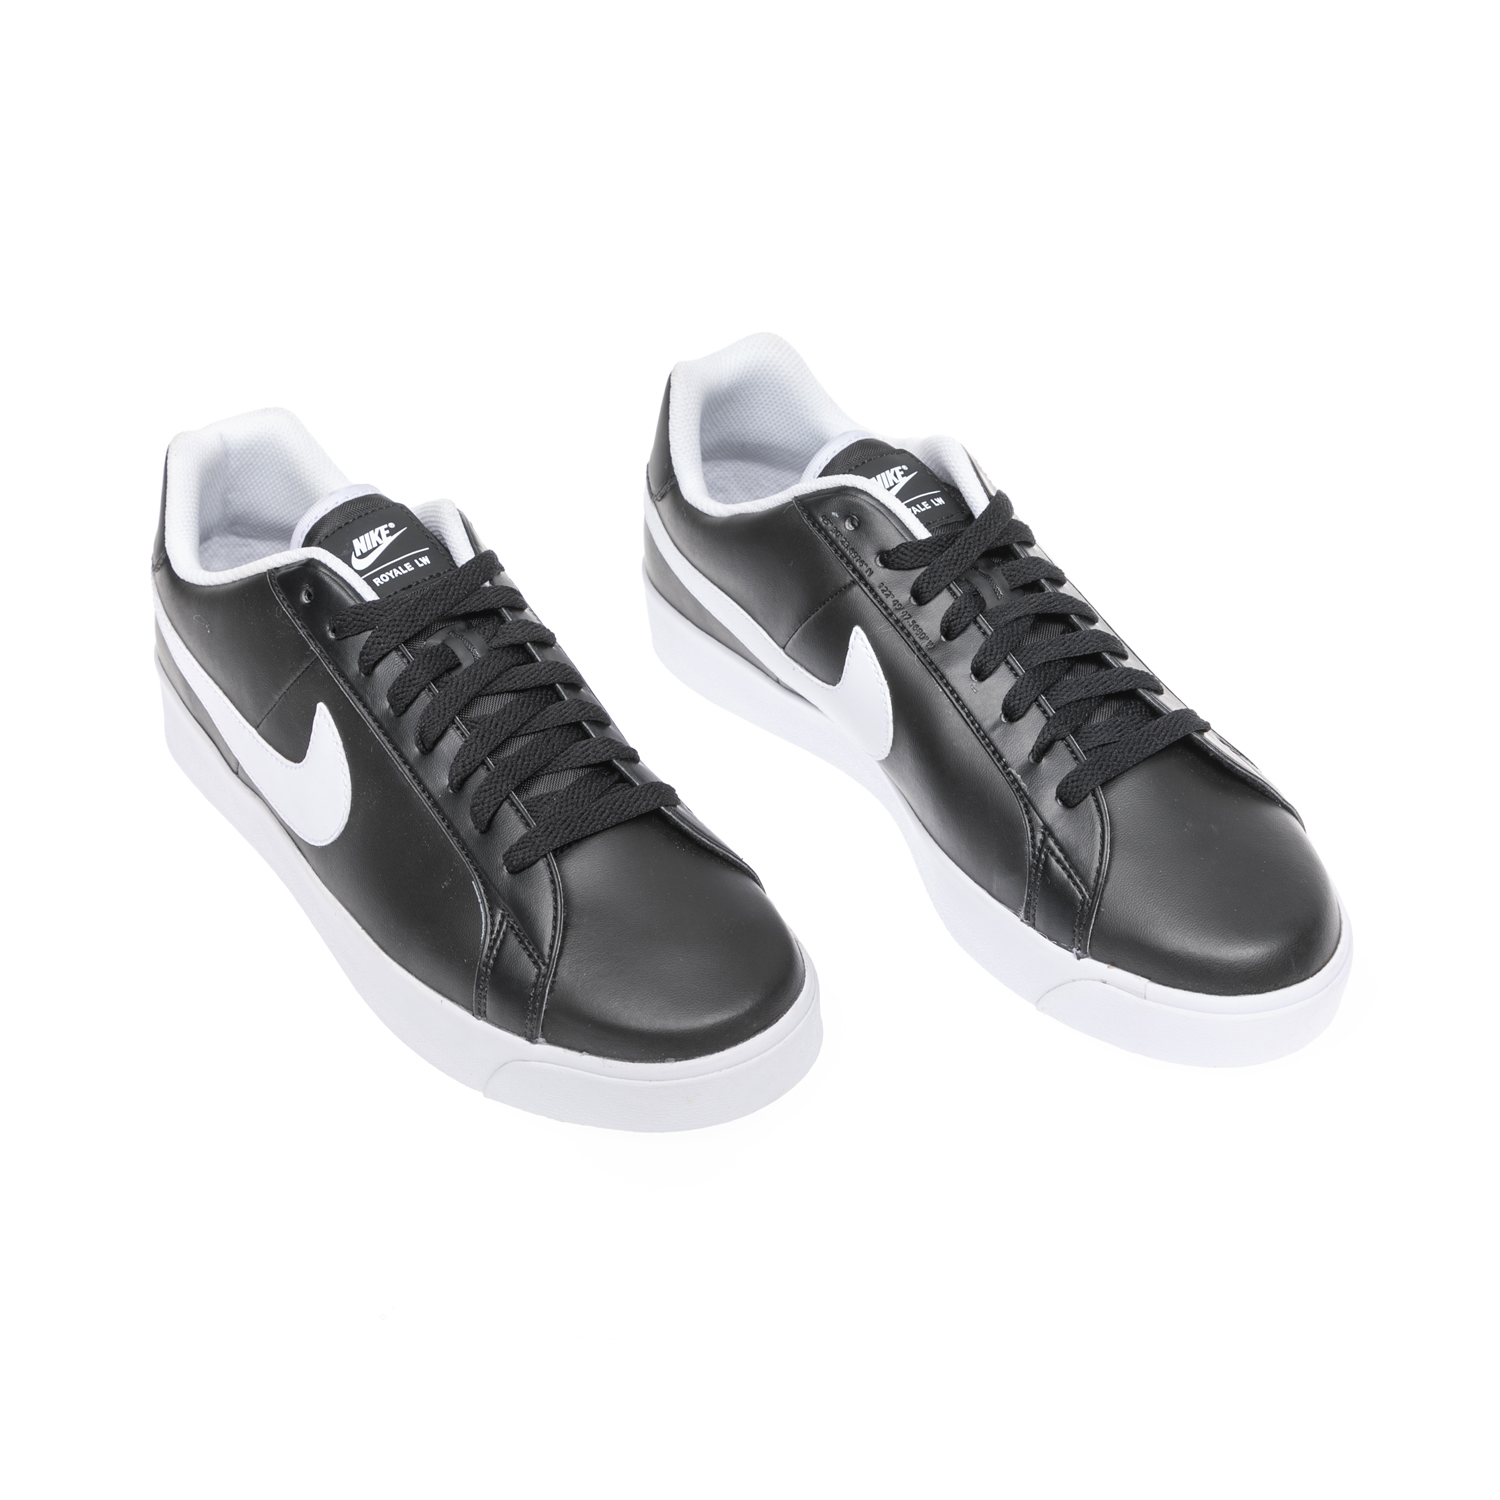 3fd03919500 NIKE - Ανδρικά αθλητικά παπούτσια NIKE COURT ROYALE μαύρα, Ανδρικά  sneakers, ΑΝΔΡΑΣ | ΠΑΠΟΥΤΣΙΑ | SNEAKERS